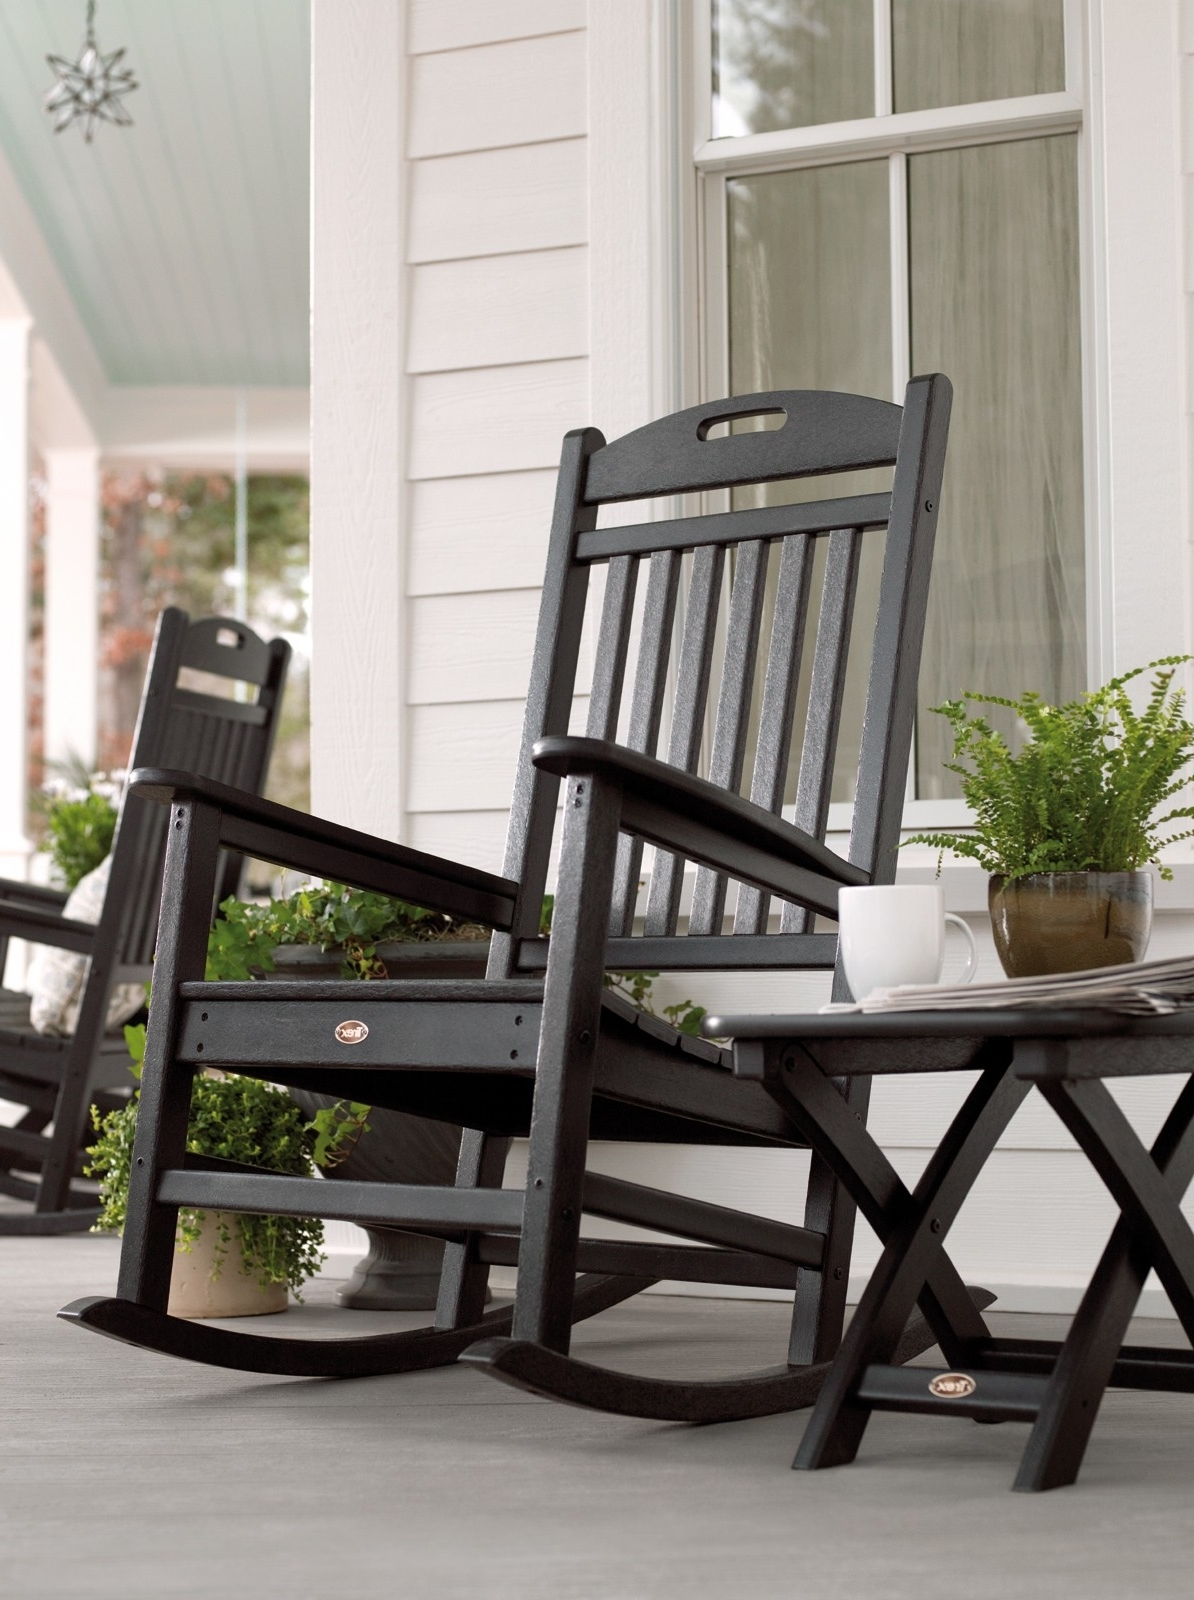 Well Liked Patio Rocking Chairs Sets Regarding Patio & Garden : Outdoor Rocking Chair Seat Cushions Outdoor Rocking (View 9 of 15)